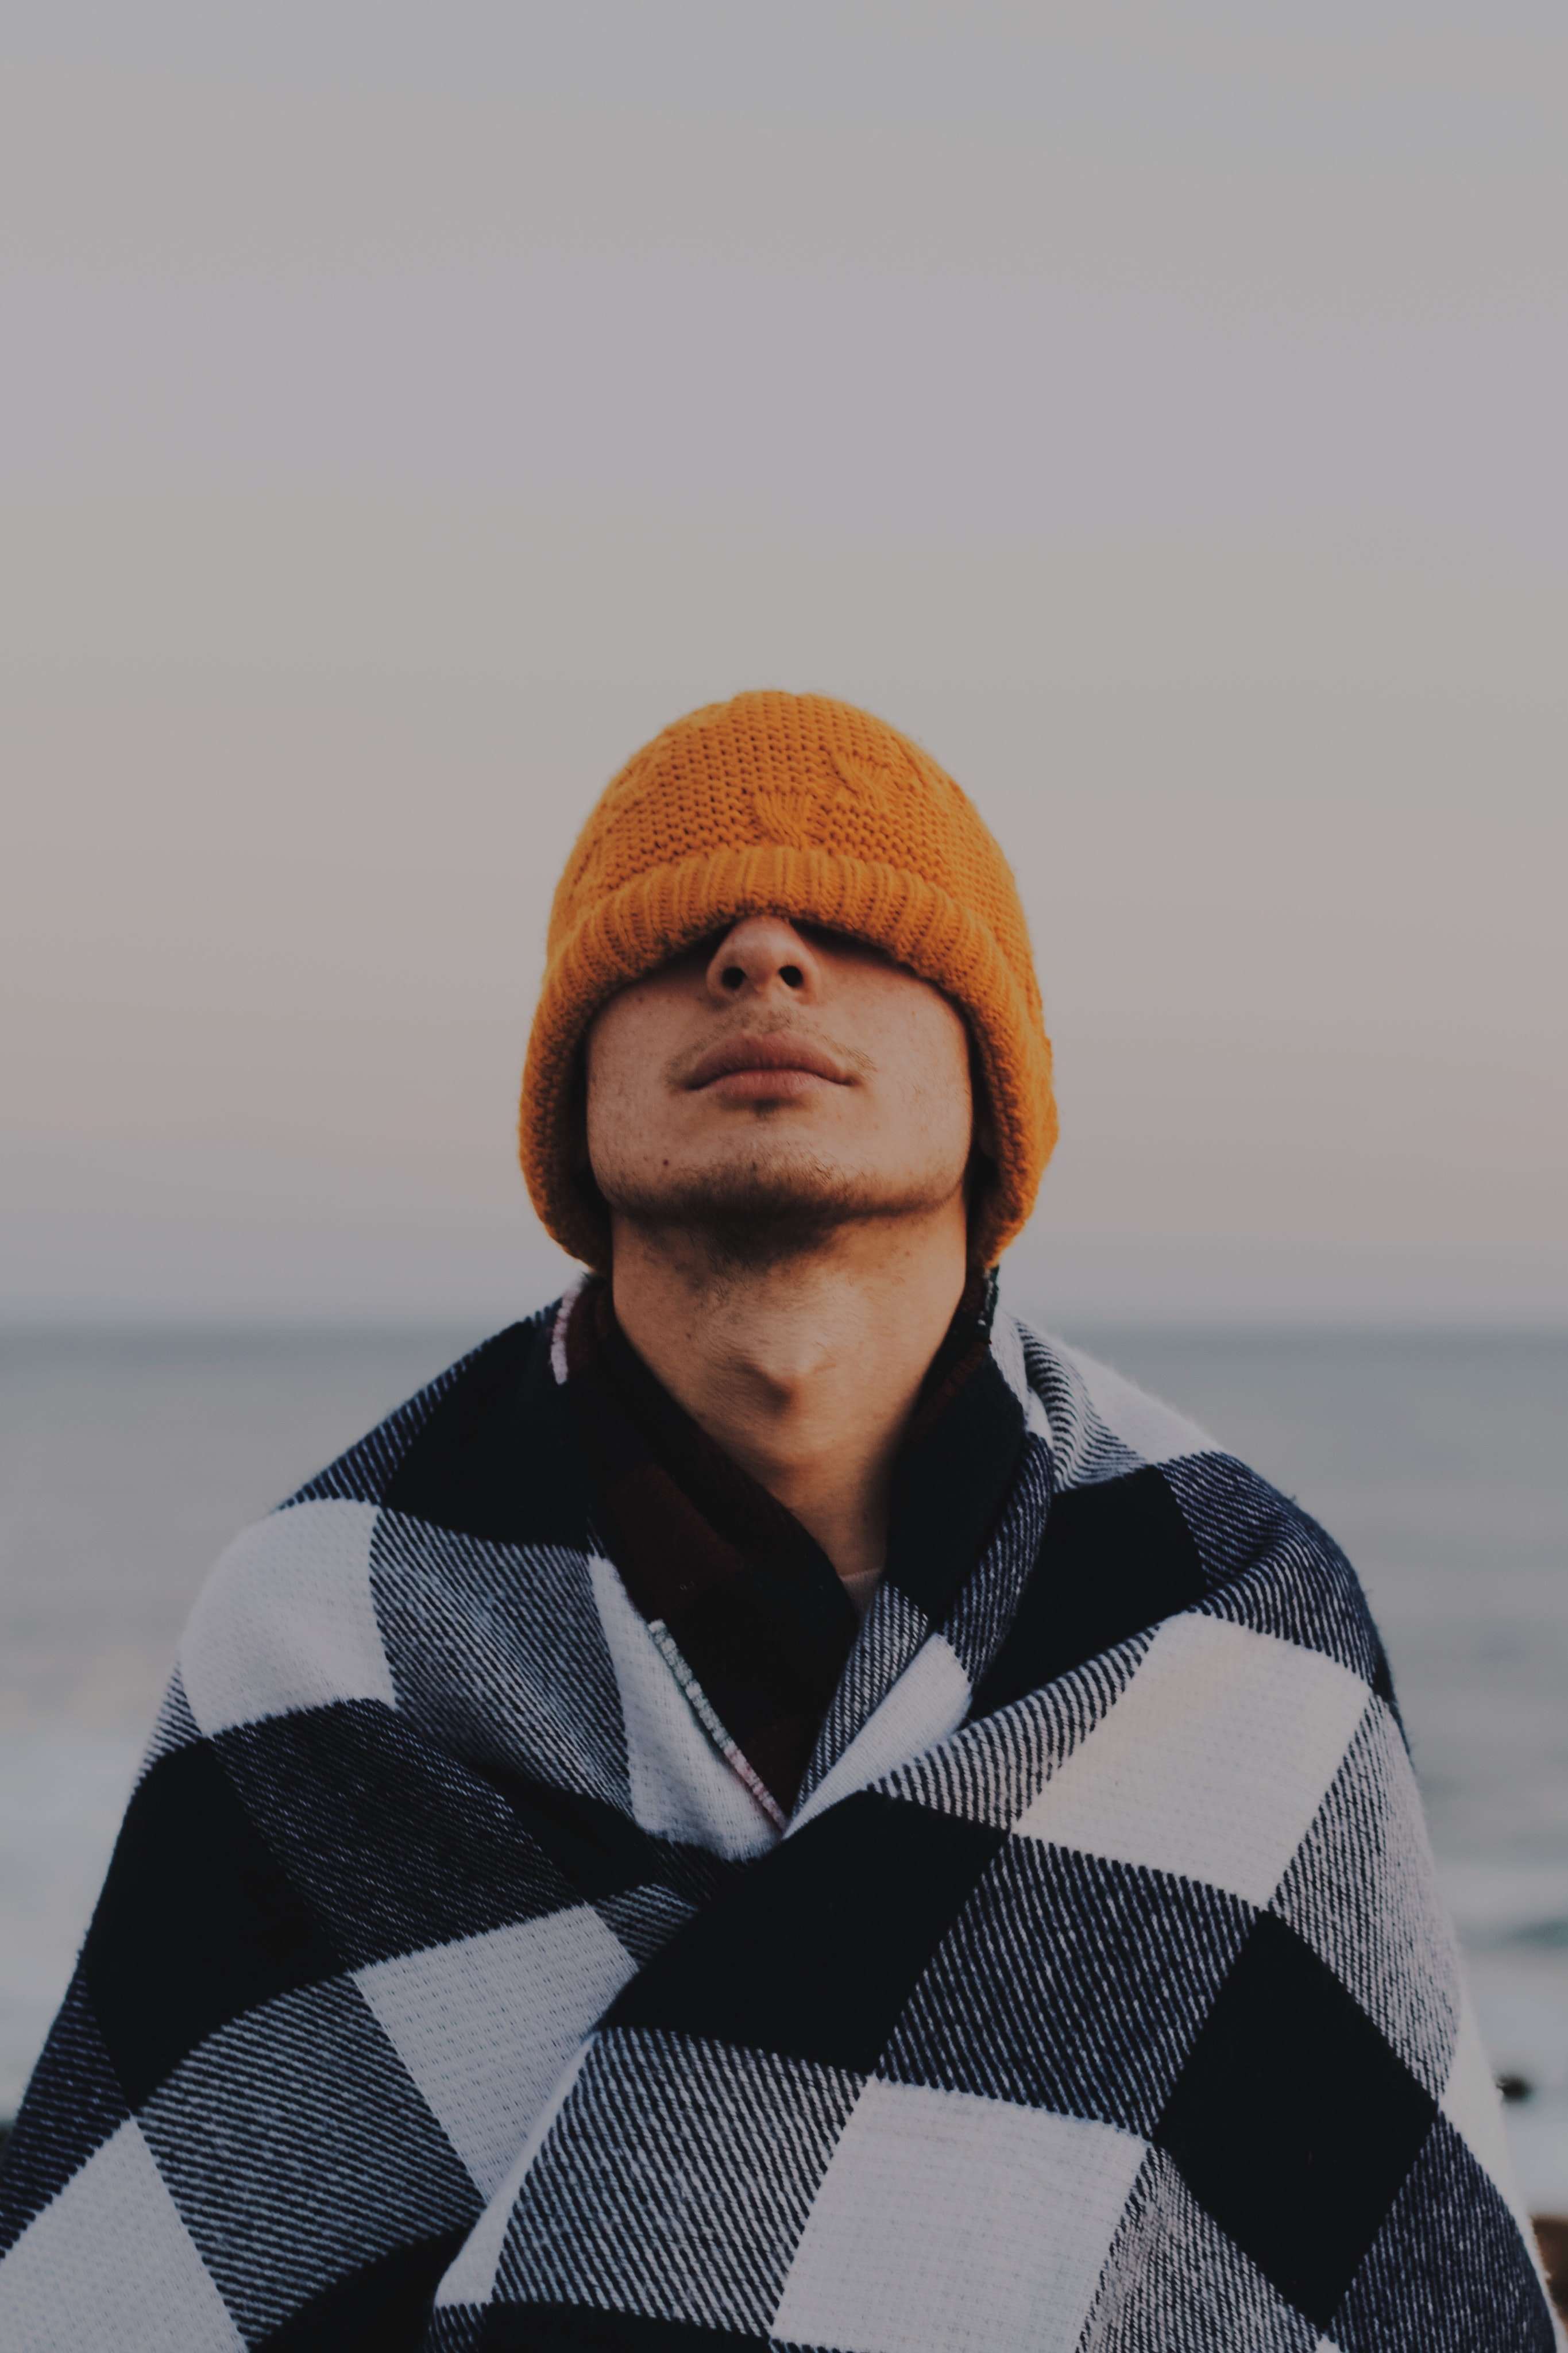 person covering his face by orange knit cap